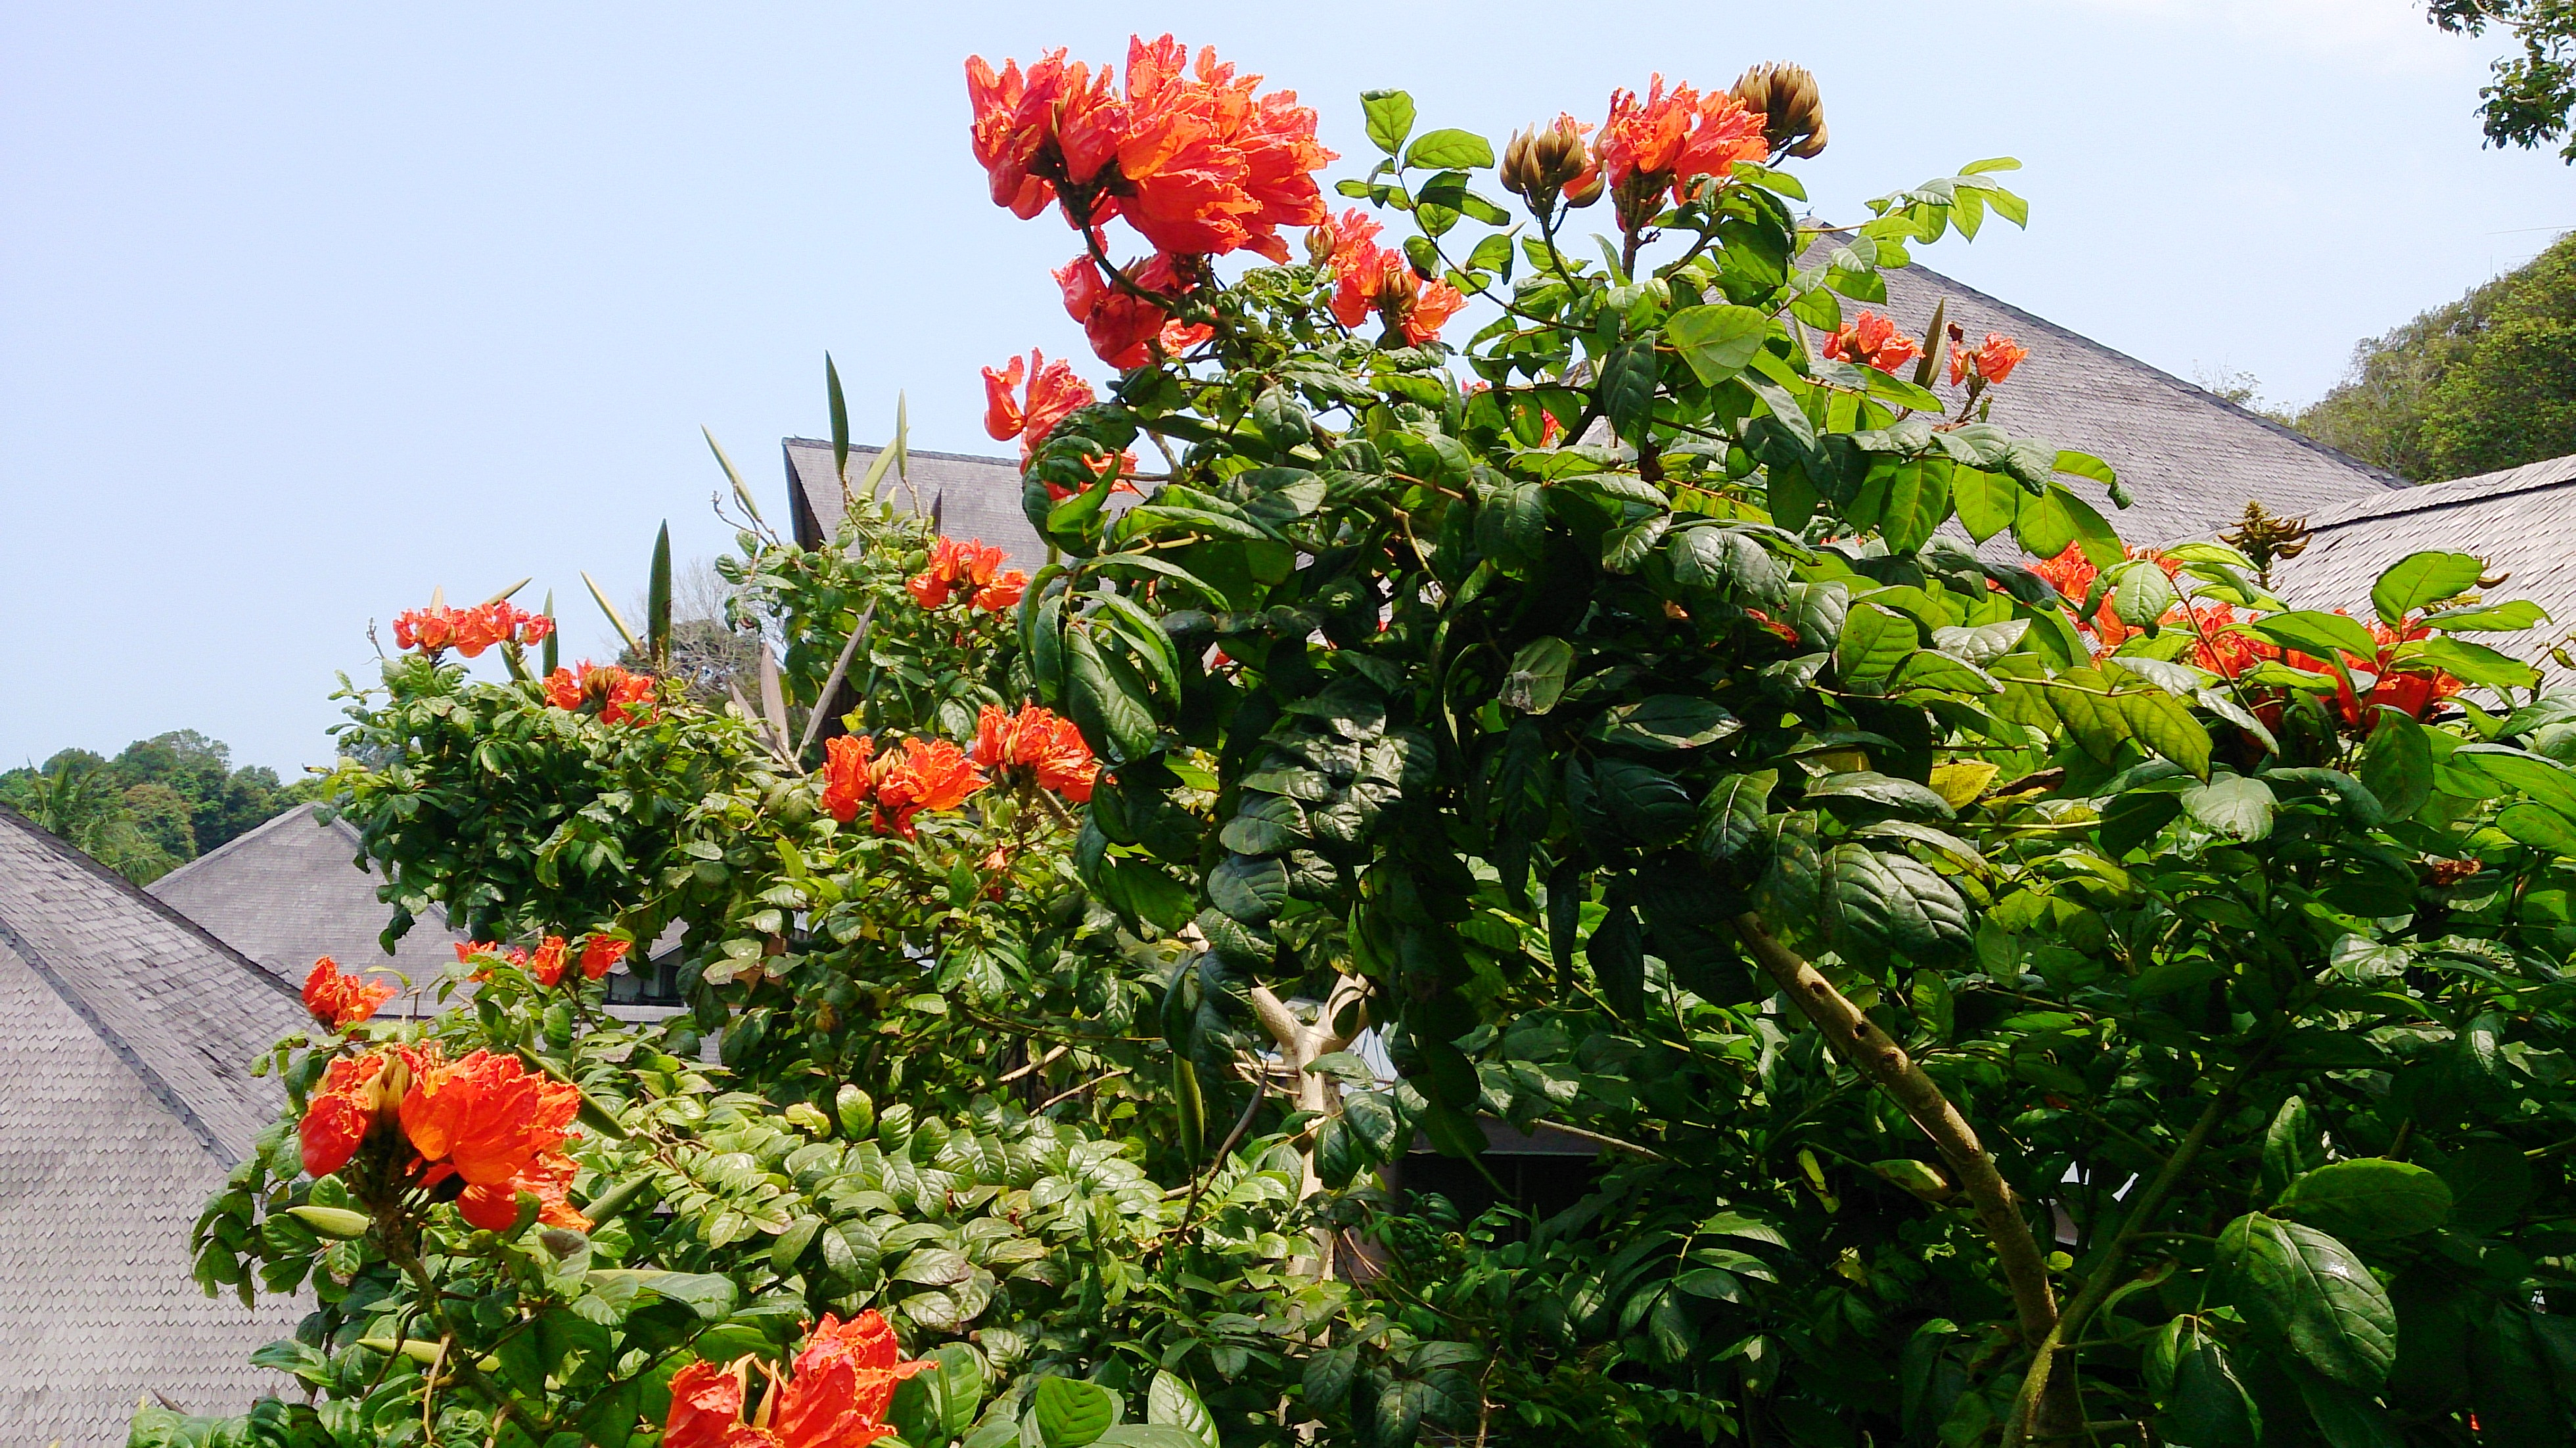 African Tulip Tree. Photo credit: Mokkie/Wikimedia Commons [CC Attribution-Share Alike 3.0 Unported license].